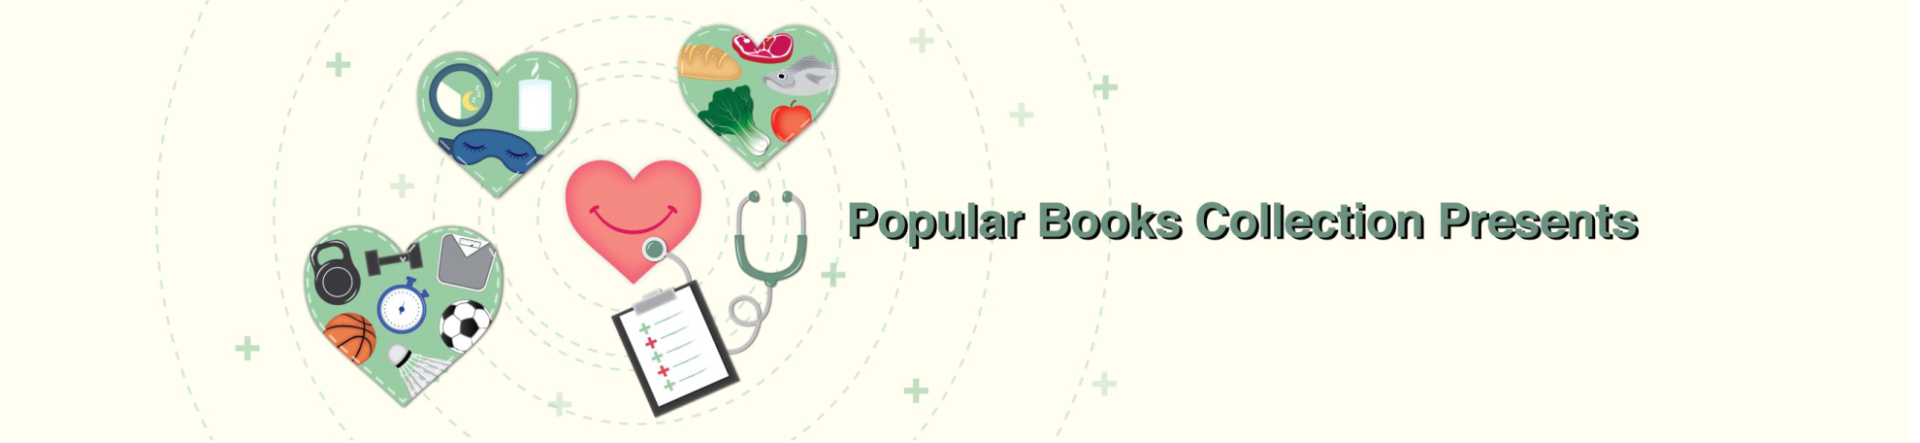 Popular Books Collection - Healthy Lifestyle